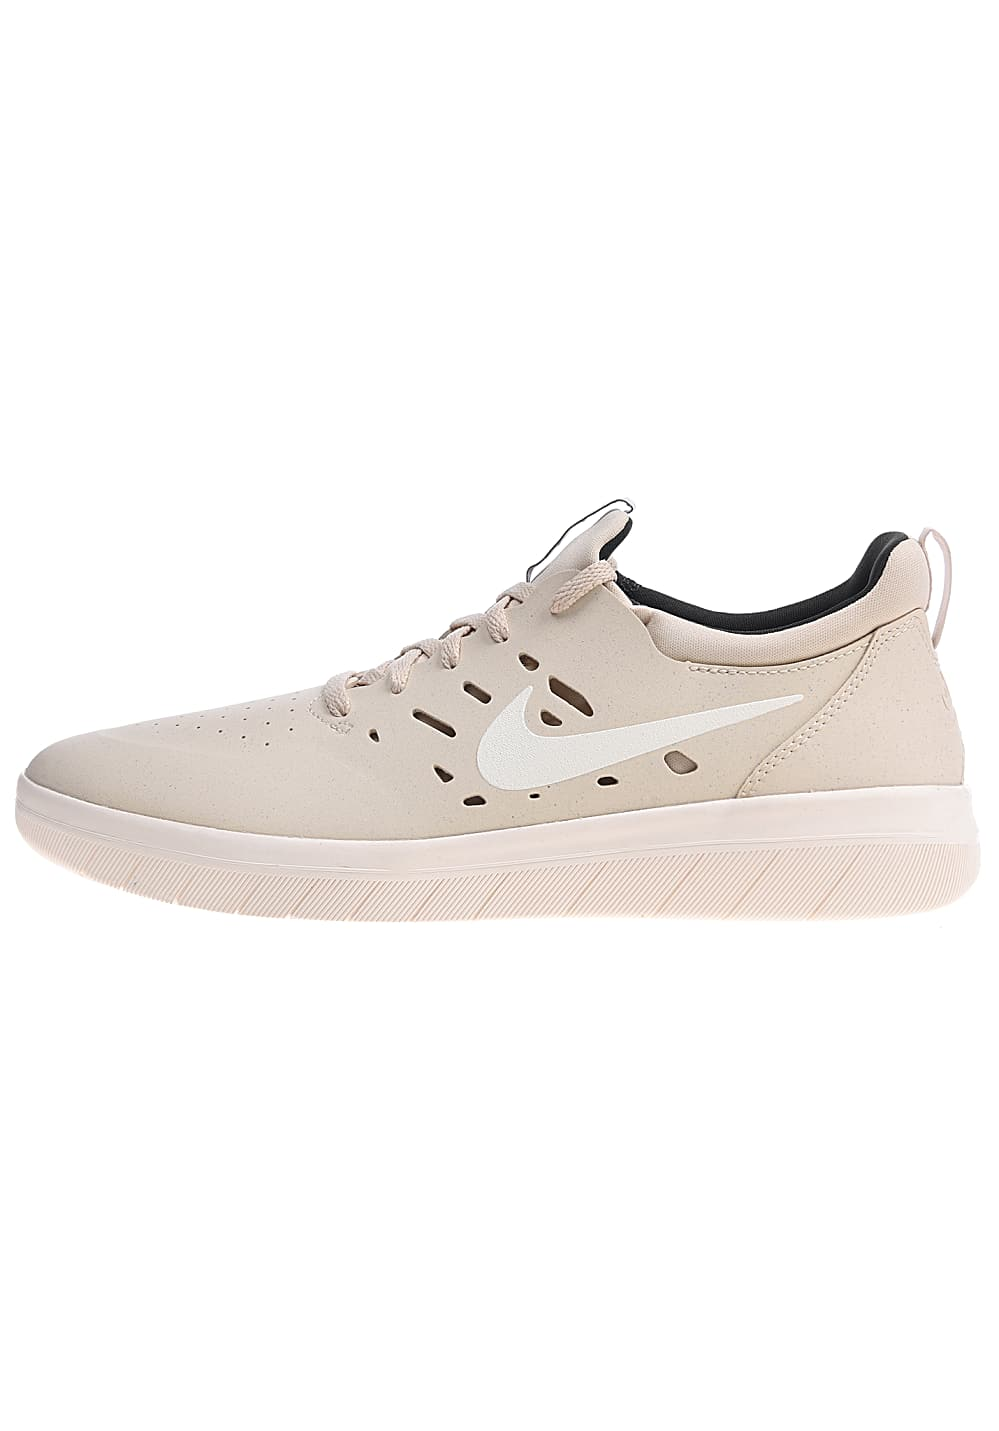 half off 6d6a6 fc735 NIKE SB Nyjah Free - Sneakers for Men - Beige - Planet Sports